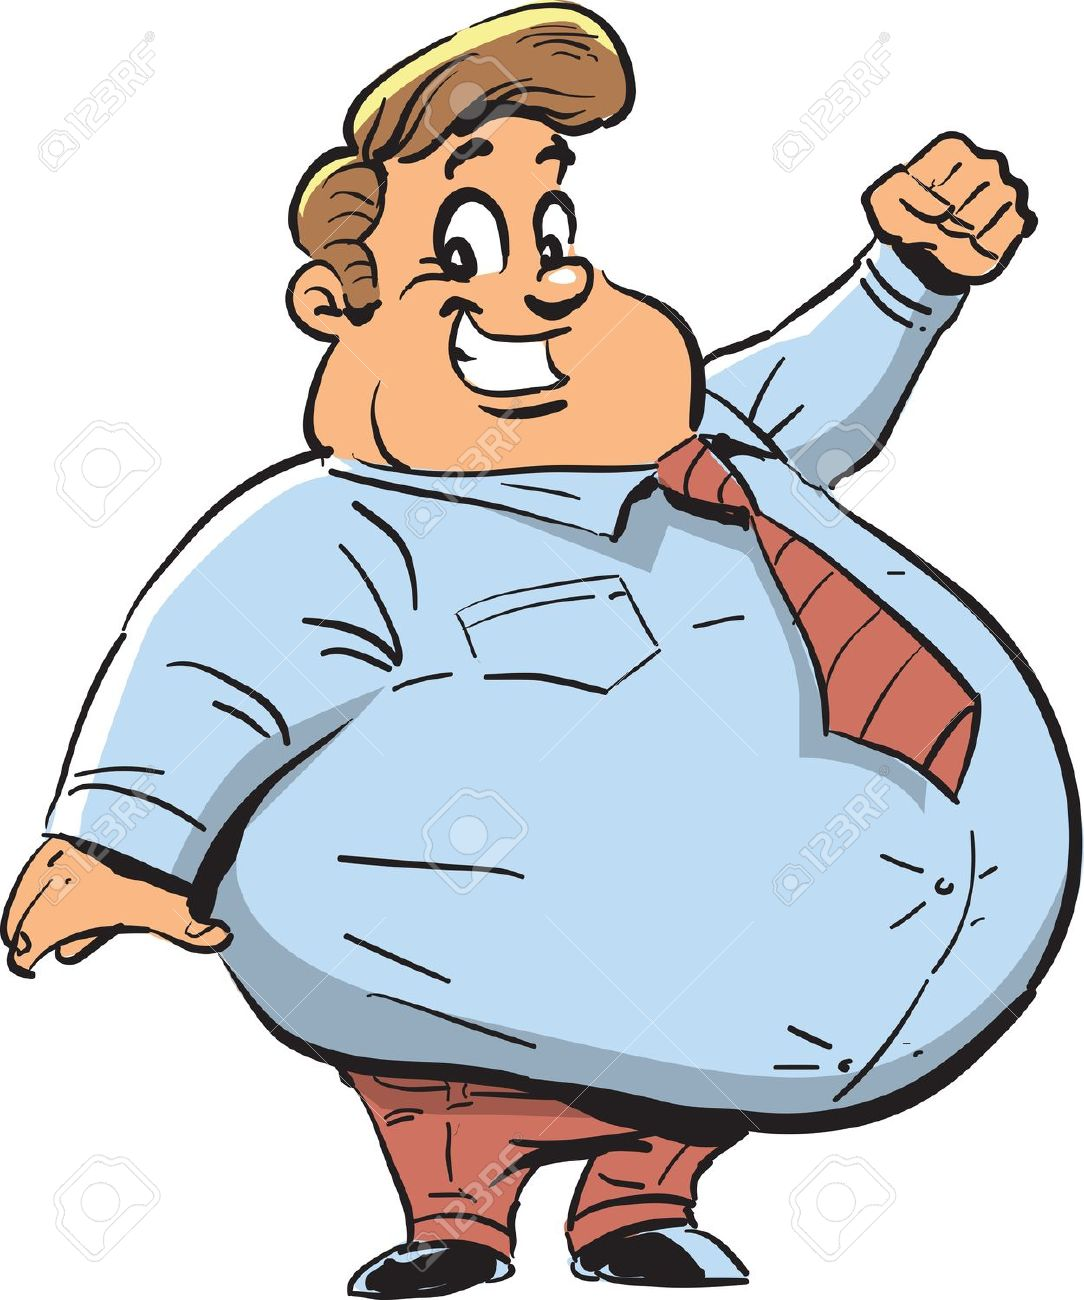 Clipart man with big belly picture transparent download Clipart man with big belly - ClipartFest picture transparent download